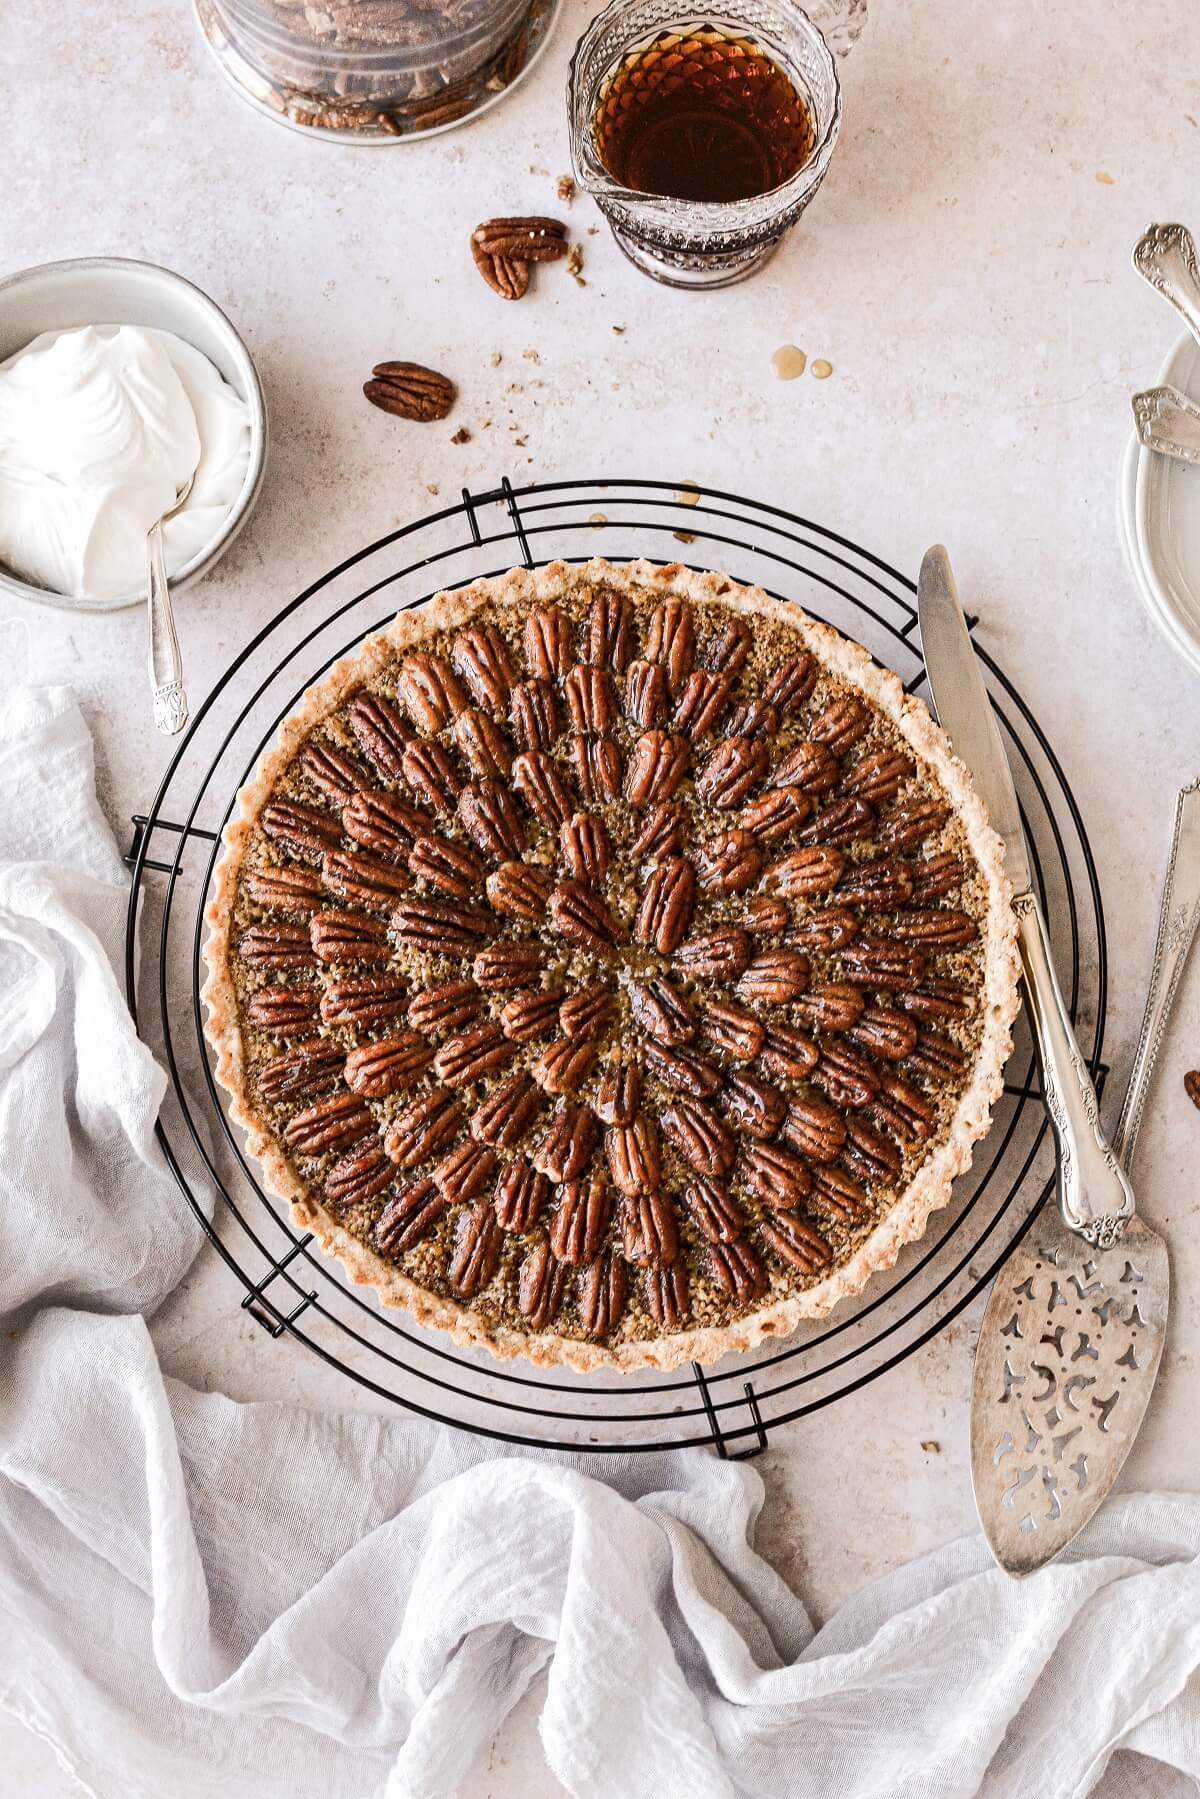 A maple pecan tart decorated with pecans, next to a bowl of whipped cream and maple syrup.